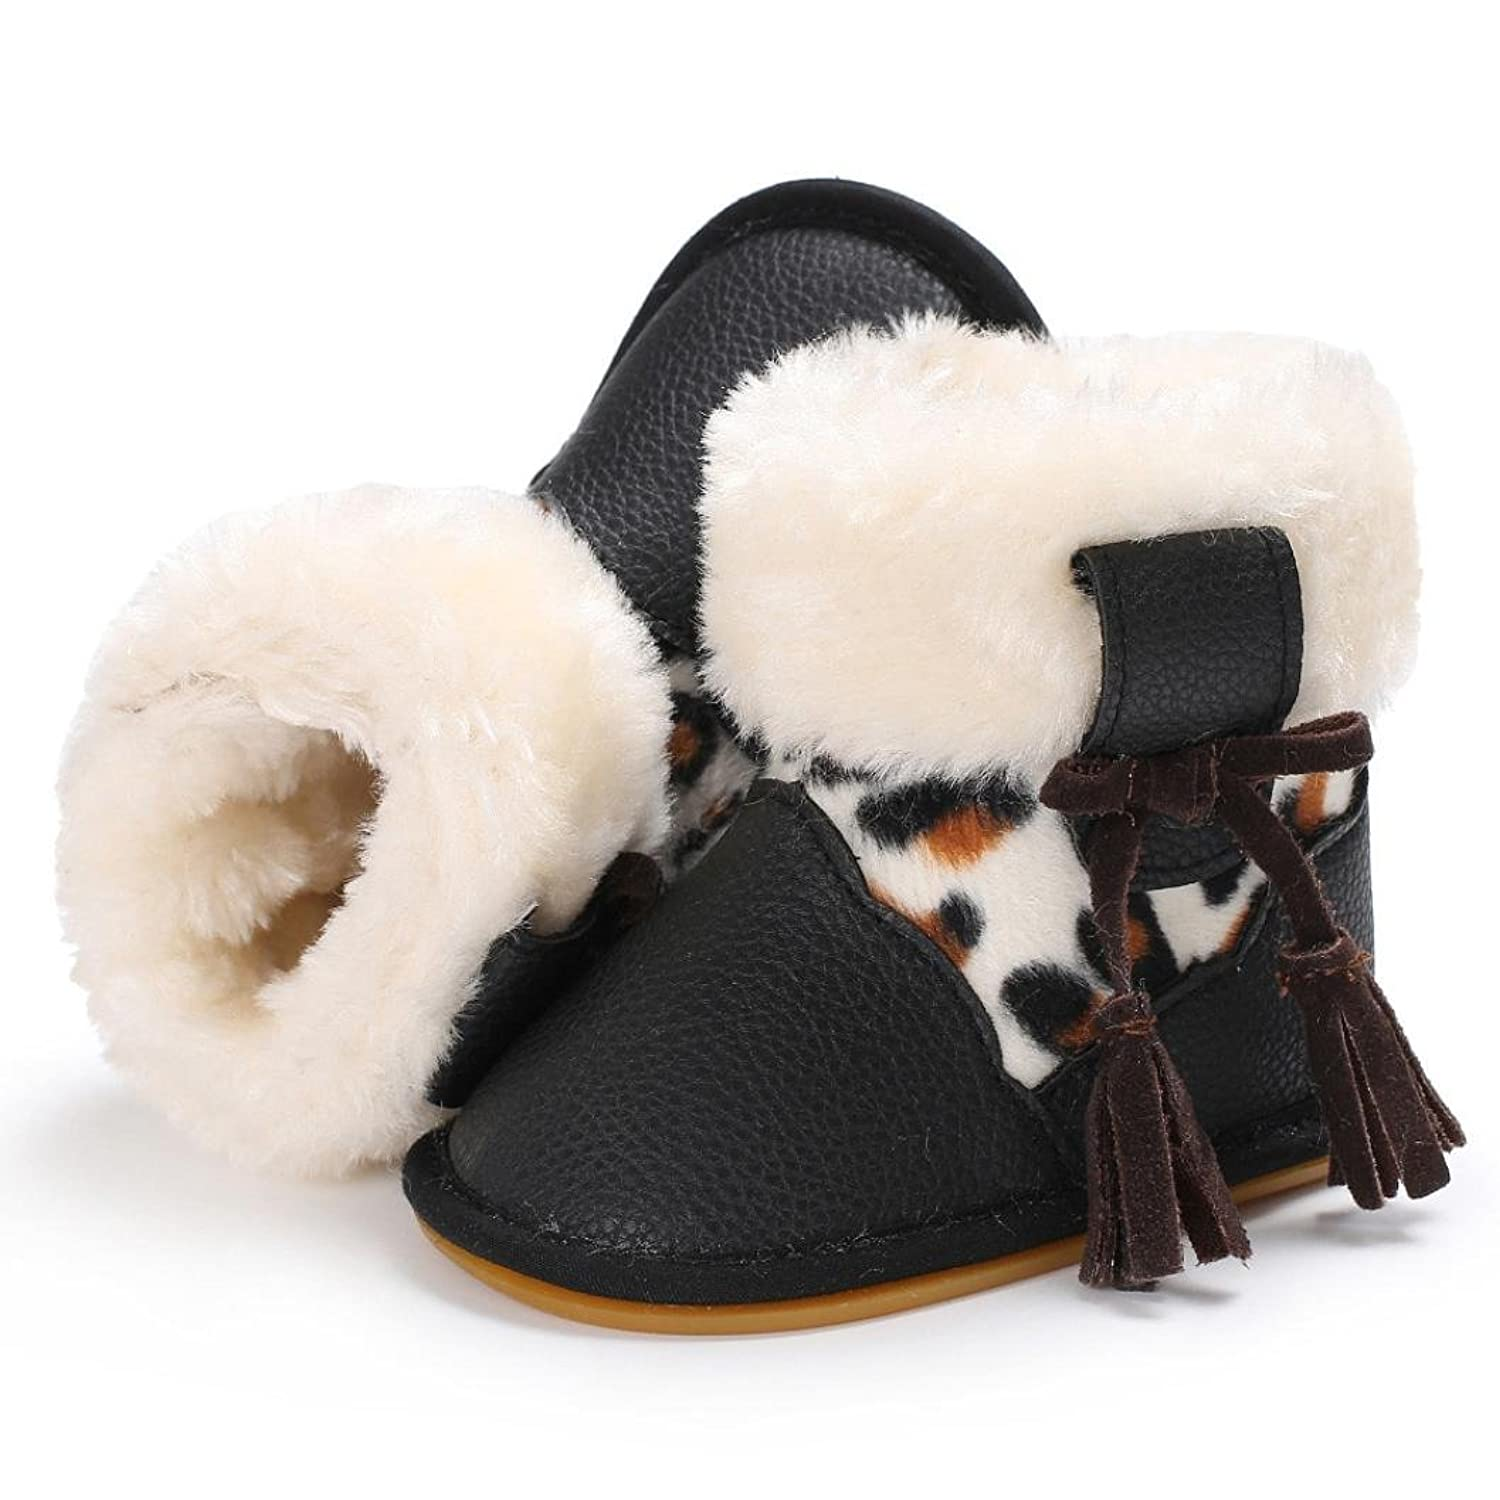 QUINTRA Baby Girl Boy Soft Booties Snow Boots Infant Toddler Newborn  Warming Shoes With Pink White Black Brown Color: Amazon.co.uk: Shoes & Bags